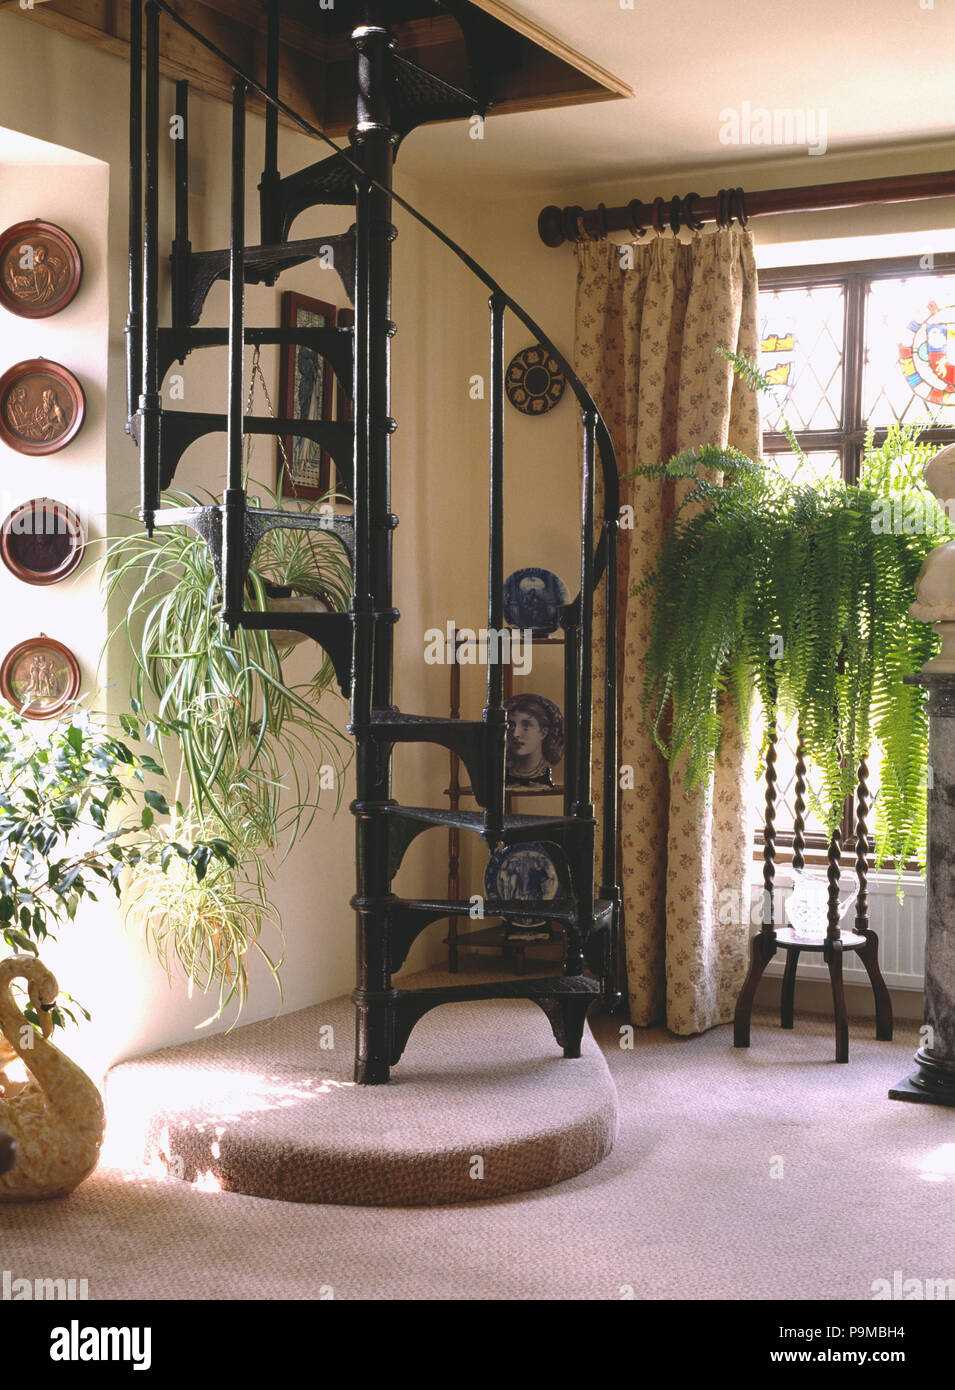 Wrought Iron Spiral Staircase In Small Hall With Boston Fern On Pedestal  Table